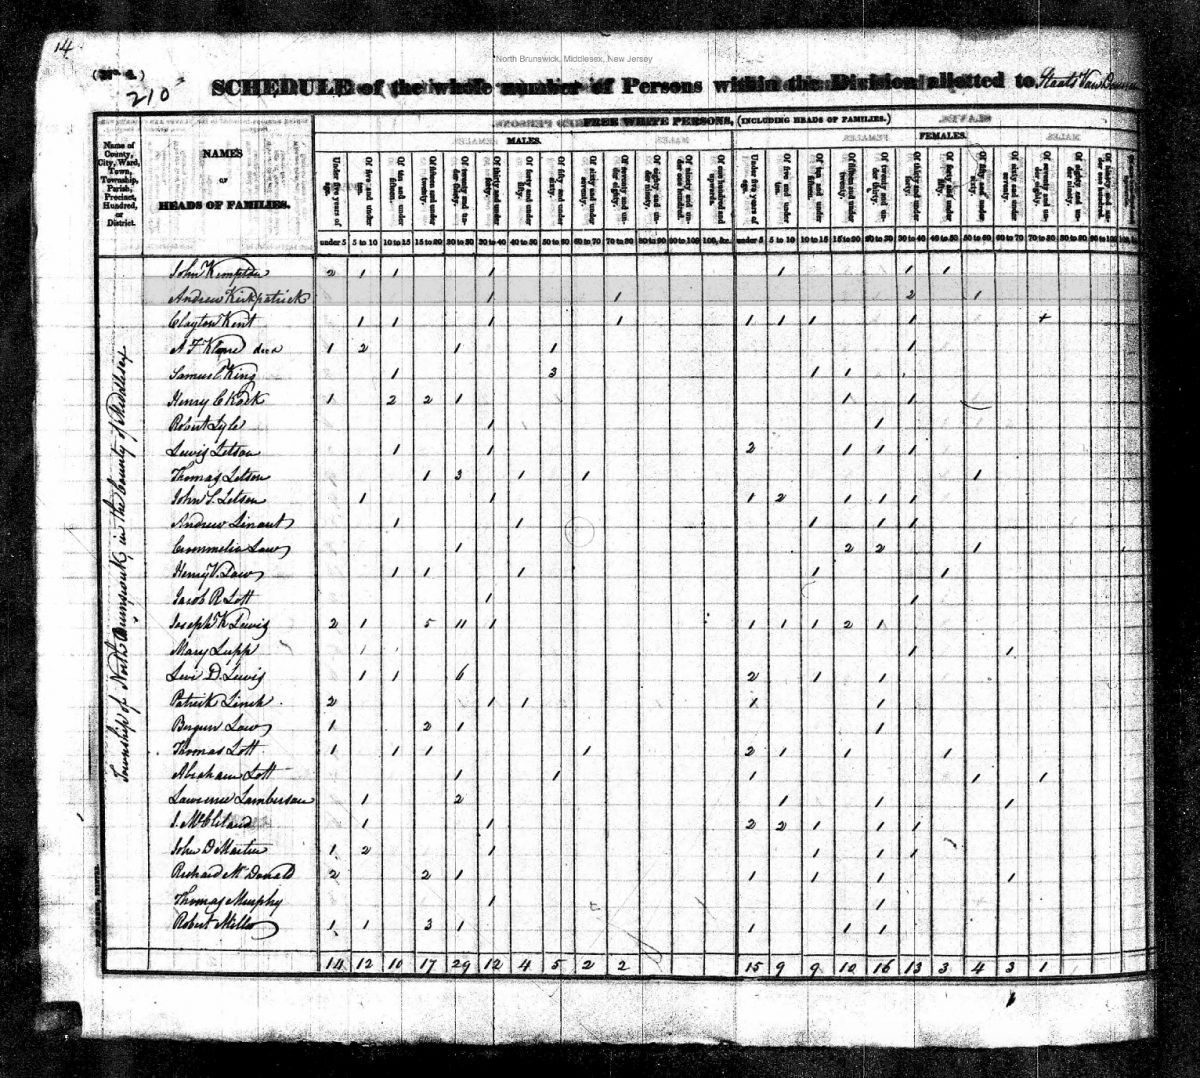 1830 Census Entry for Andrew Kirkpatrick